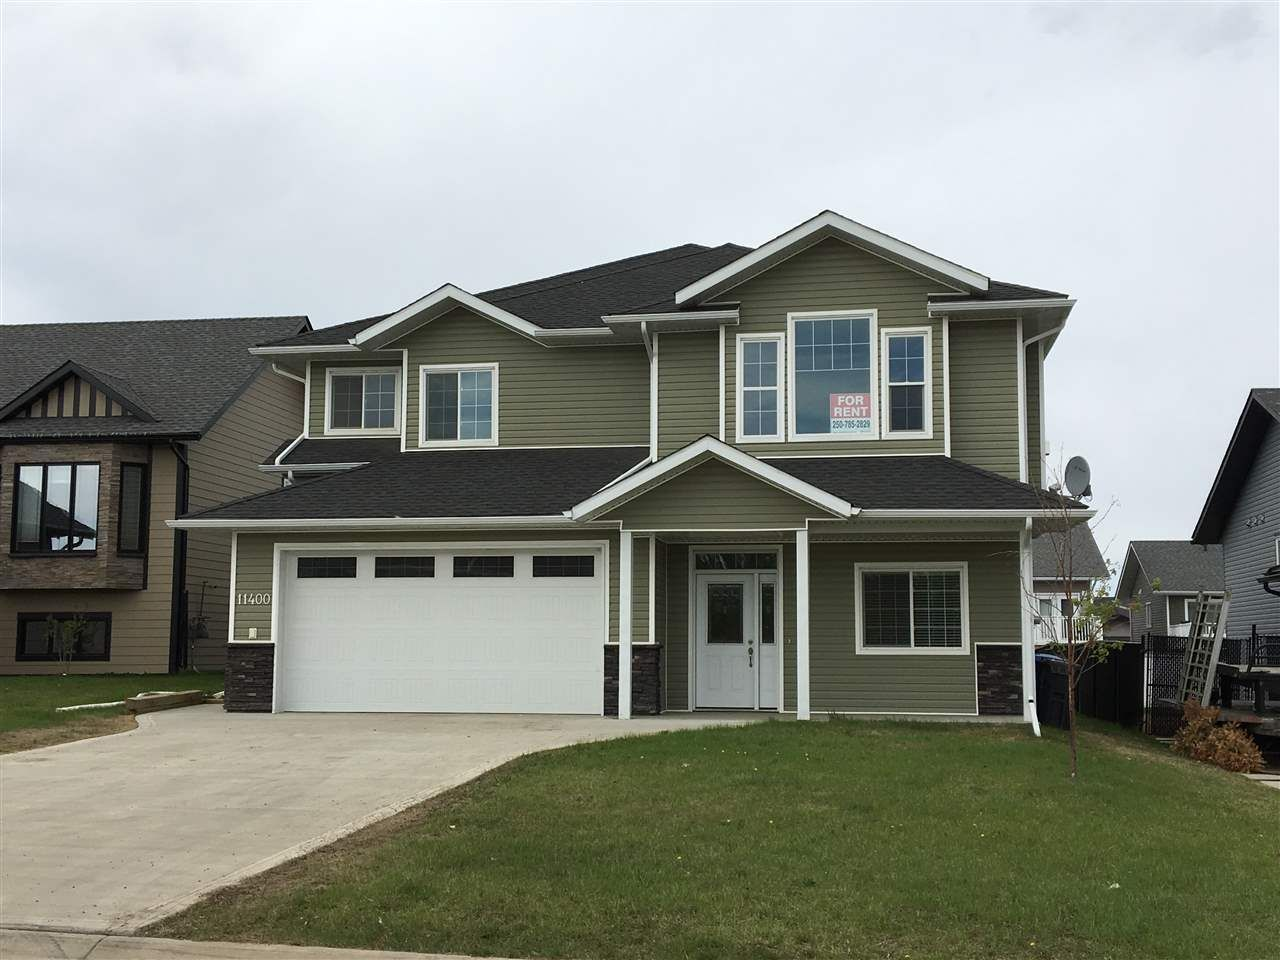 Main Photo: 11400 102 STREET in : Fort St. John - City NW House for sale : MLS®# R2283991